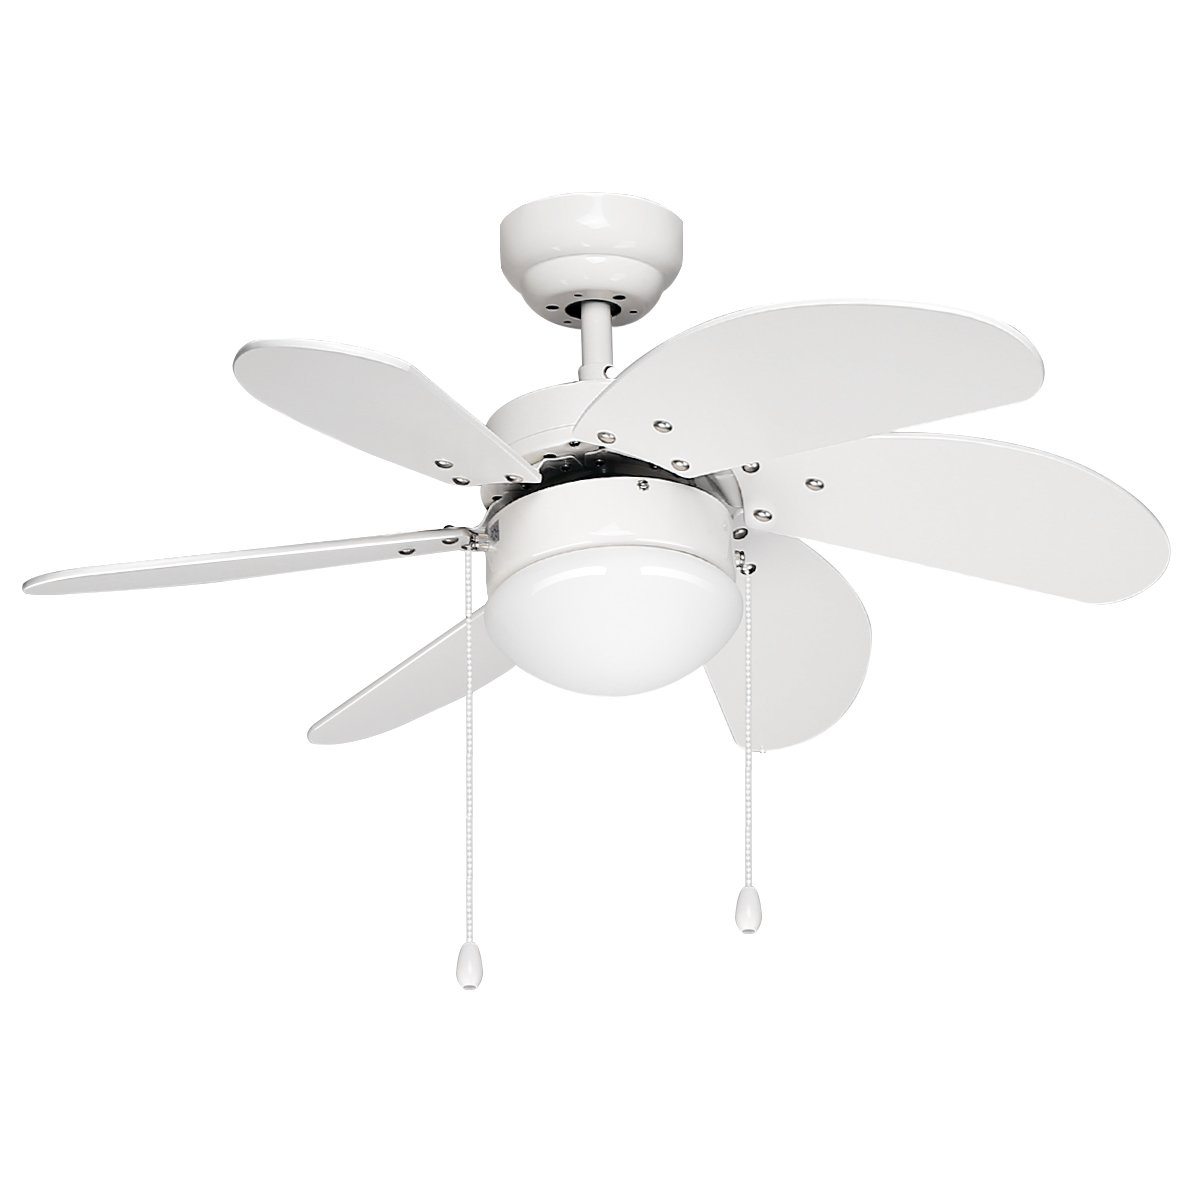 LE 30 inch Indoor Ceiling Fan 6-blades Reversible Classic Fan Light Kit For Winter Summer, UL Listed, Perfect for Home Hotel House Bedroom Dinning Hall Lobby by Lighting EVER